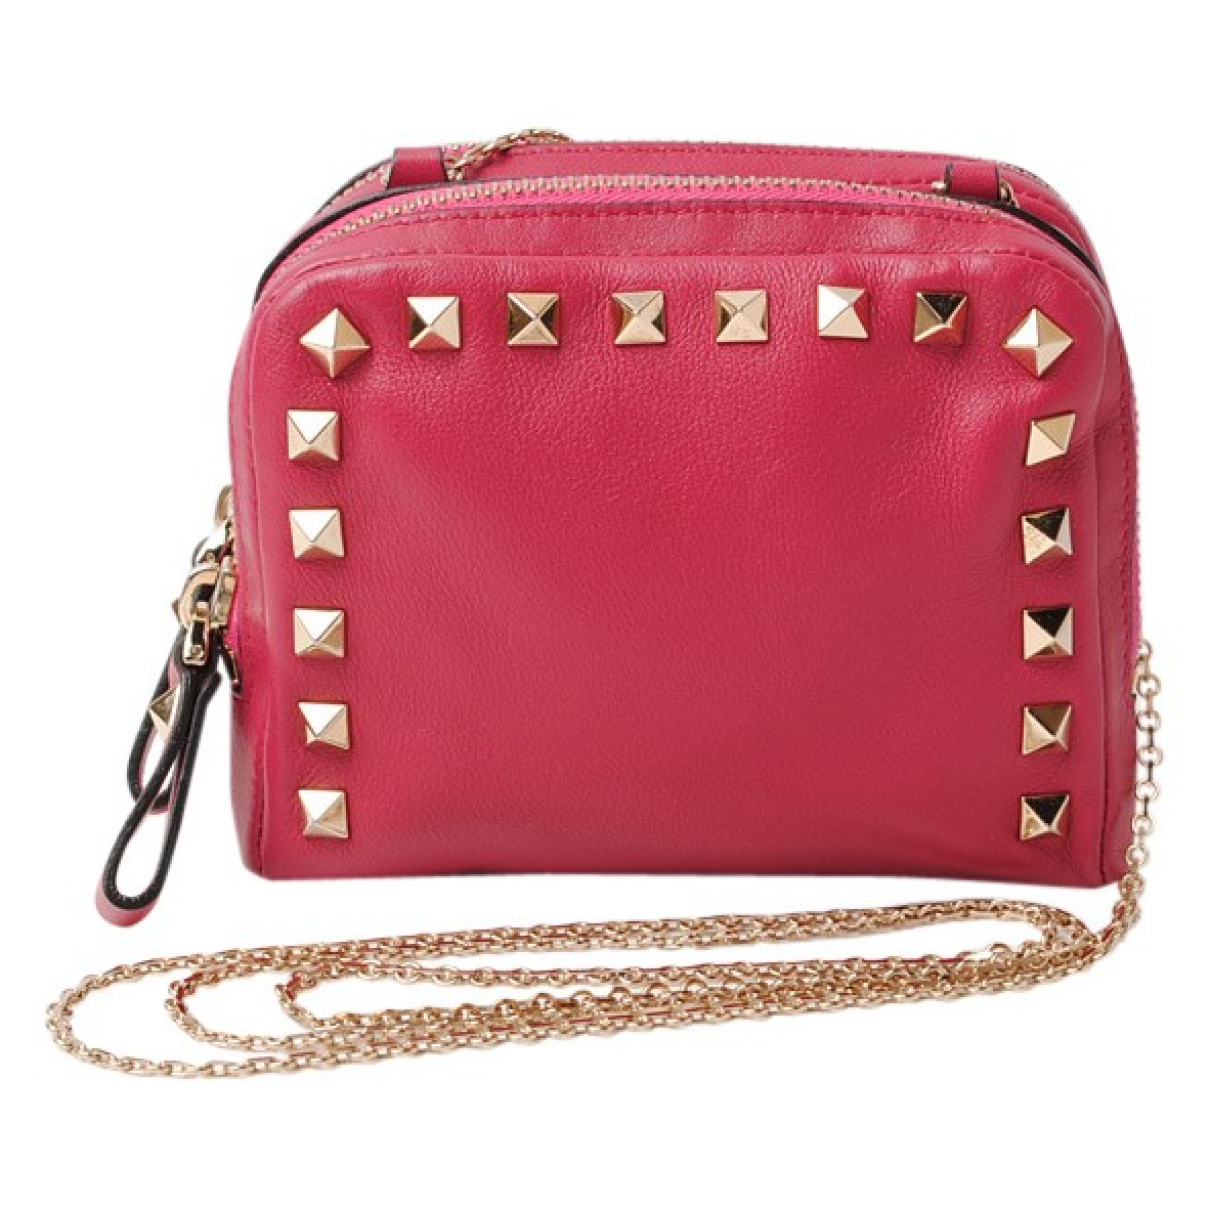 Valentino Garavani \N Pink Leather Clutch bag for Women \N